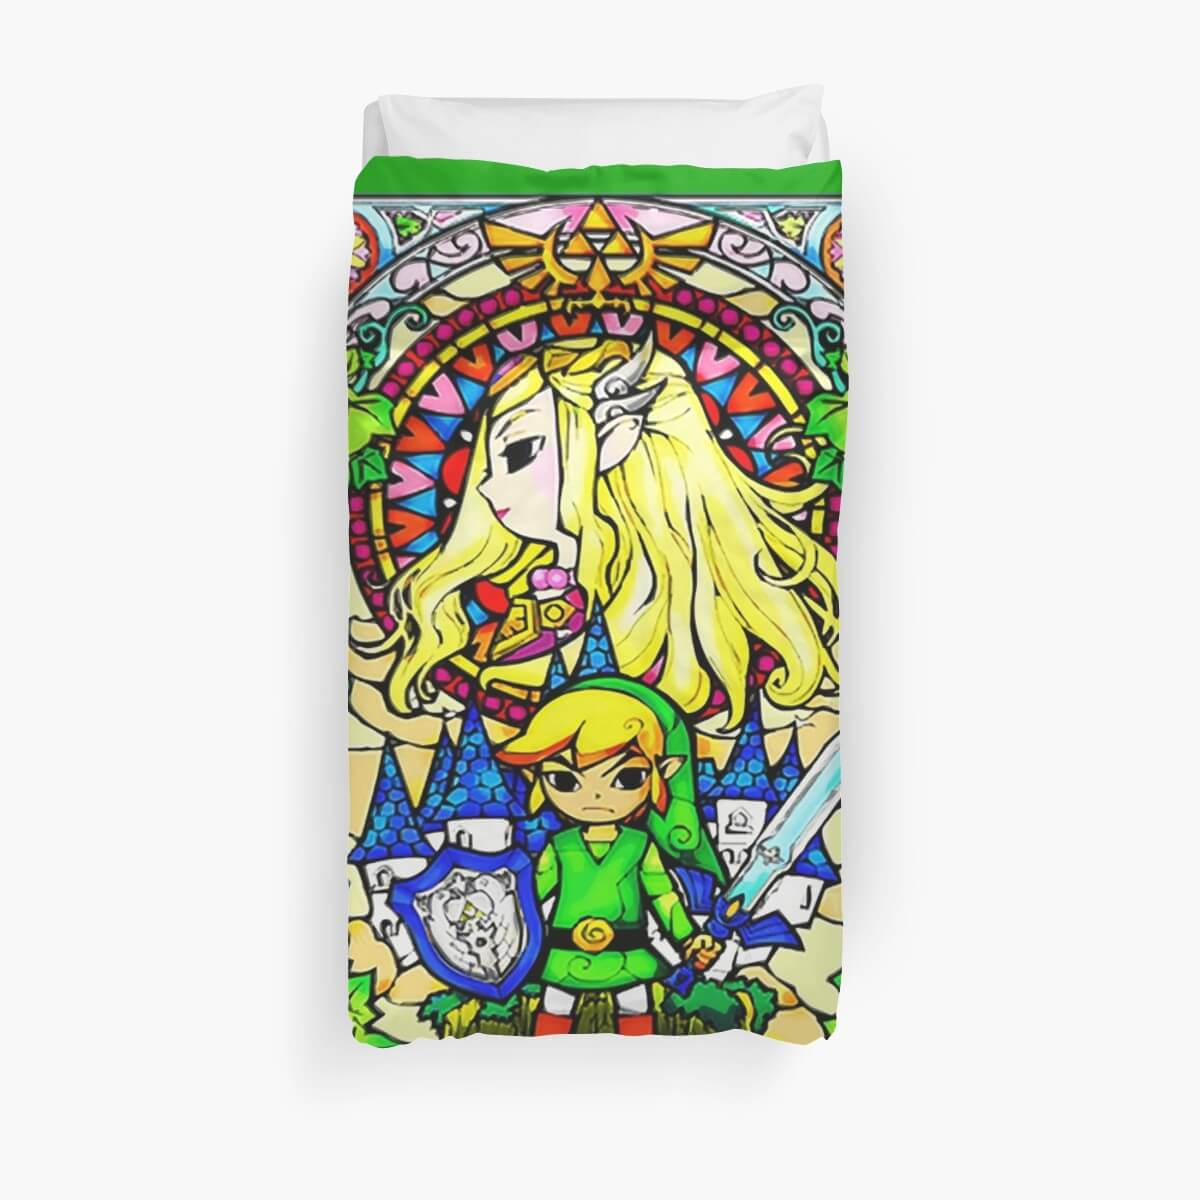 legend of zelda bedding set 6 (1)